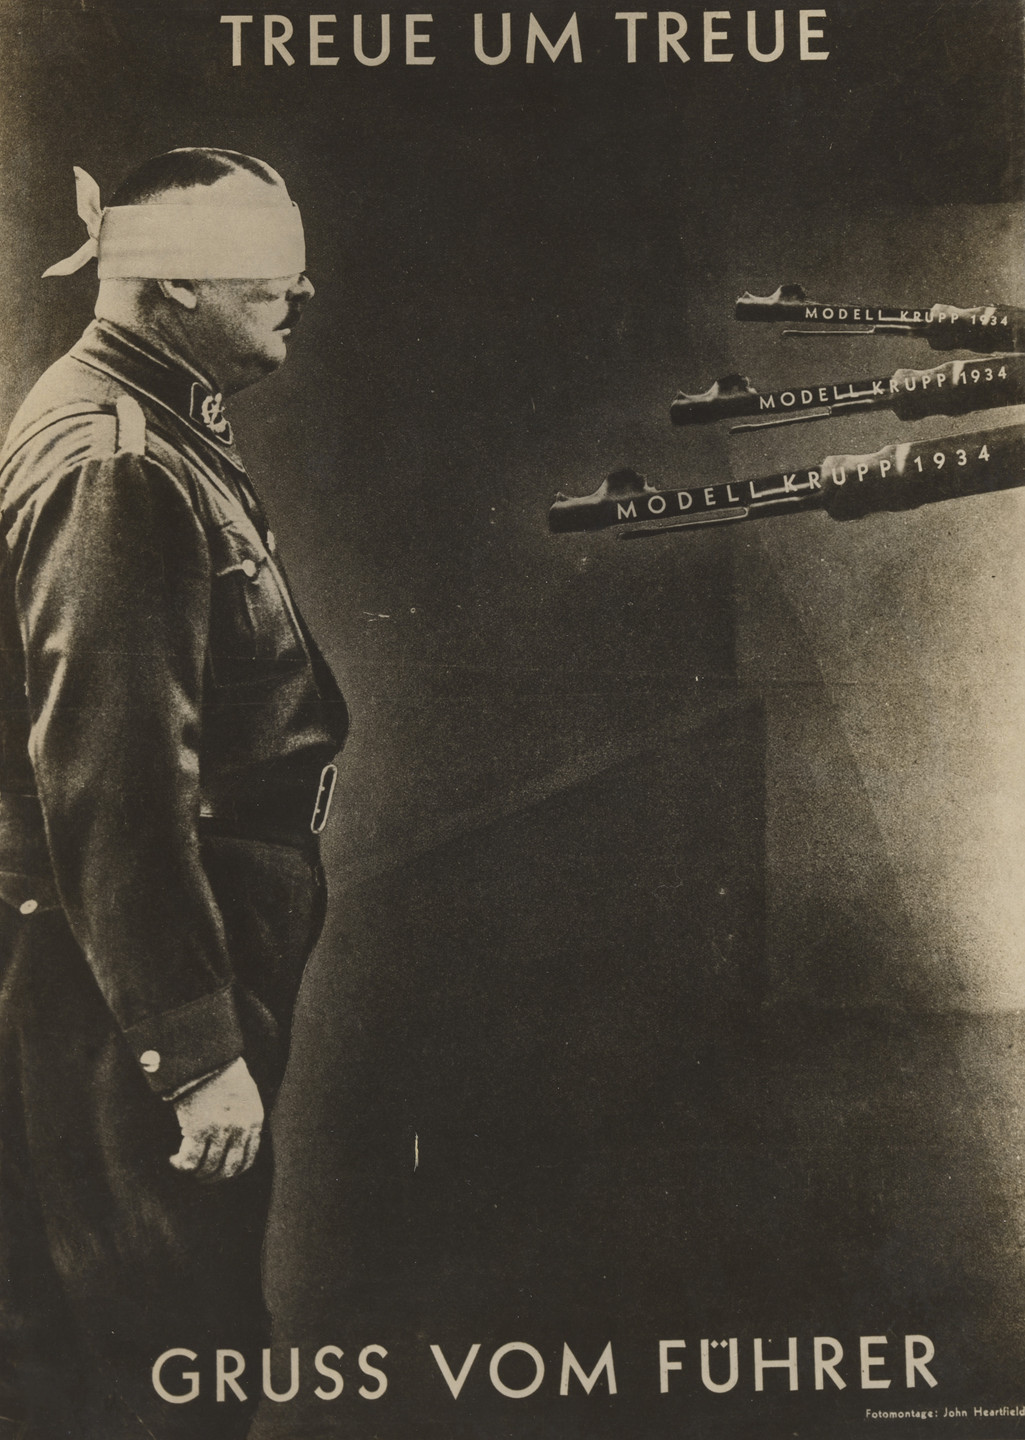 John Heartfield (Helmut Herzfeld). Loyalty for Loyalty / Greetings from the Führer (Treue um Treue / Gruß vom Führer). 1934